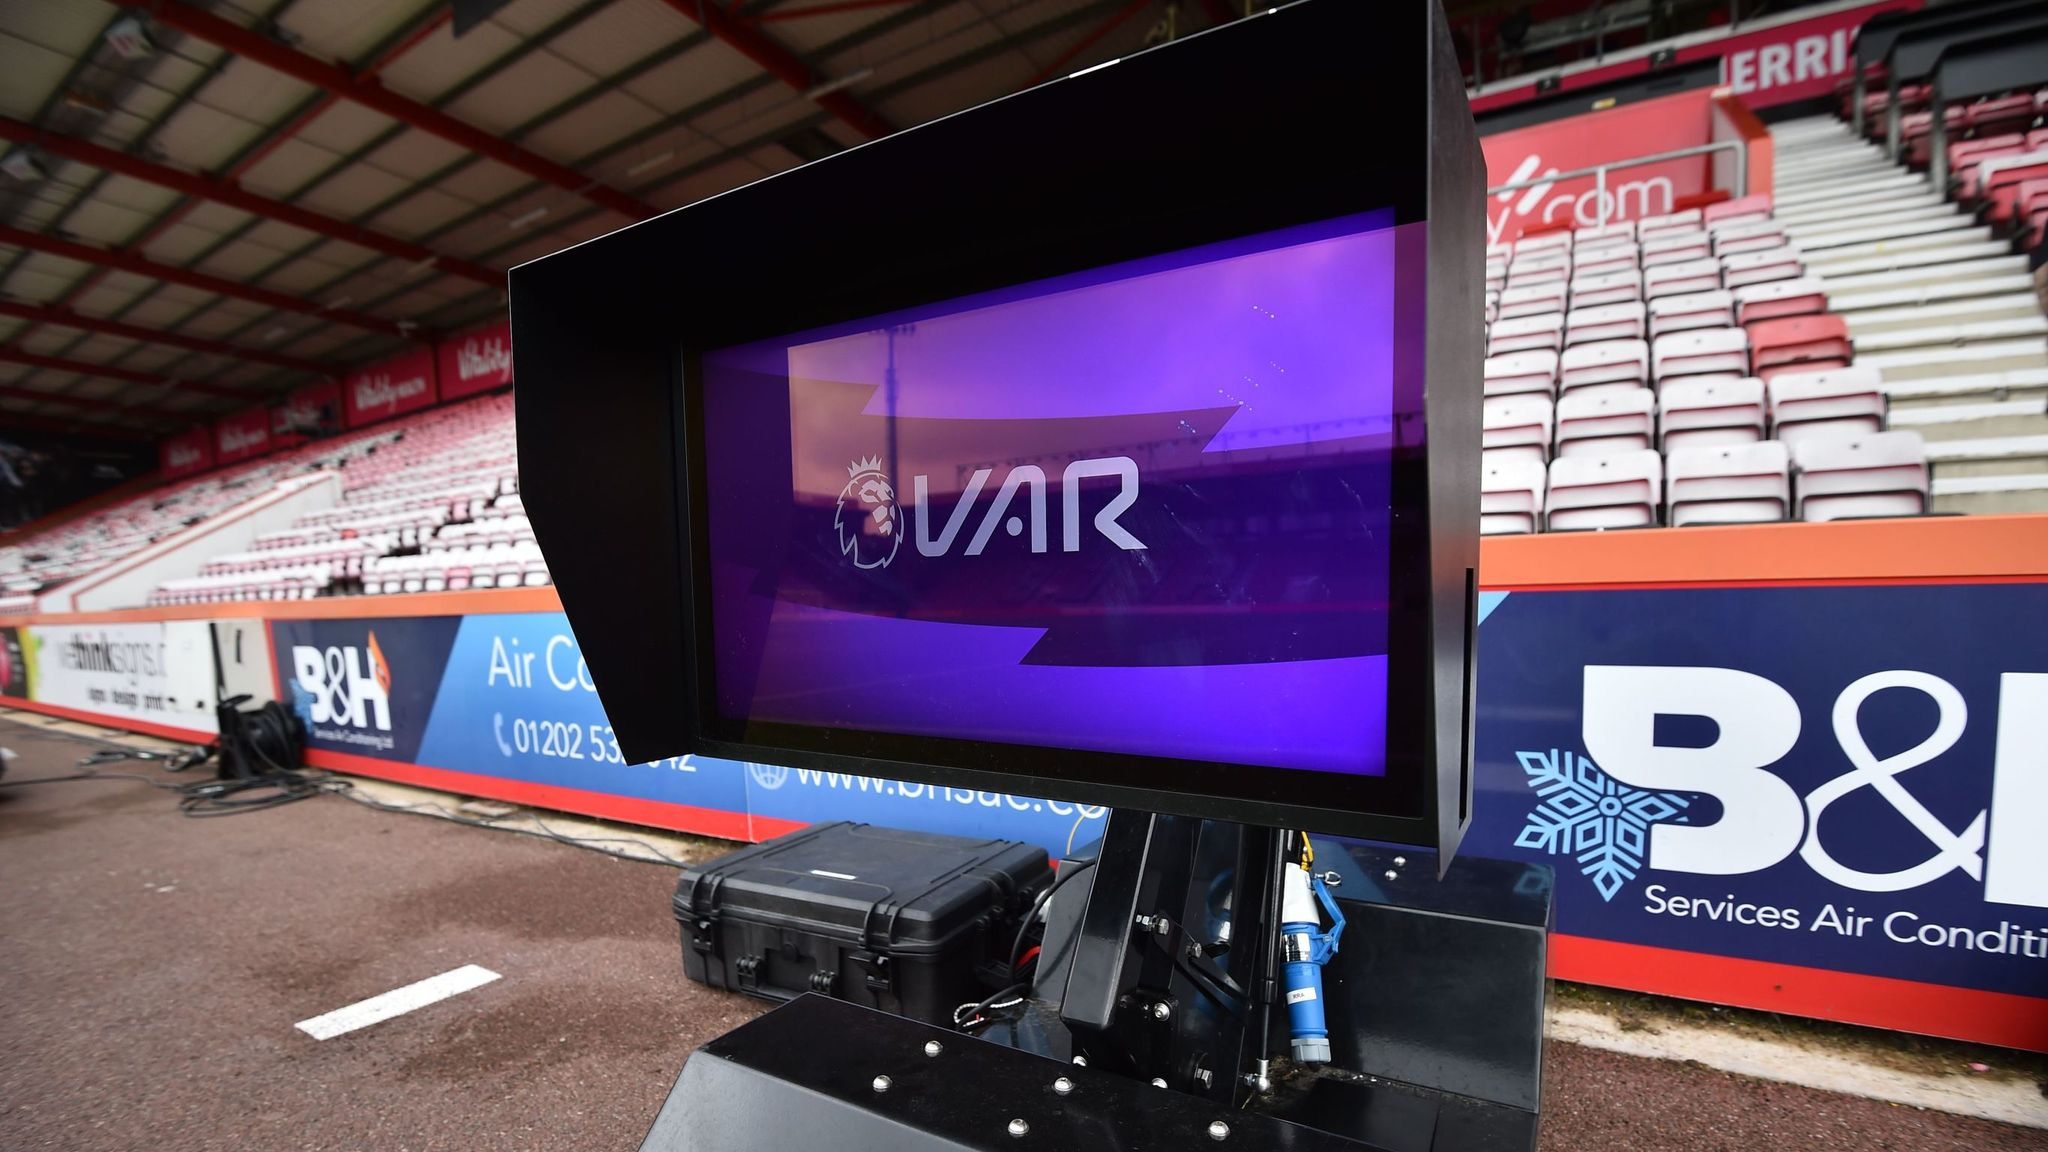 VAR: Why aren't Premier League referees using monitors?